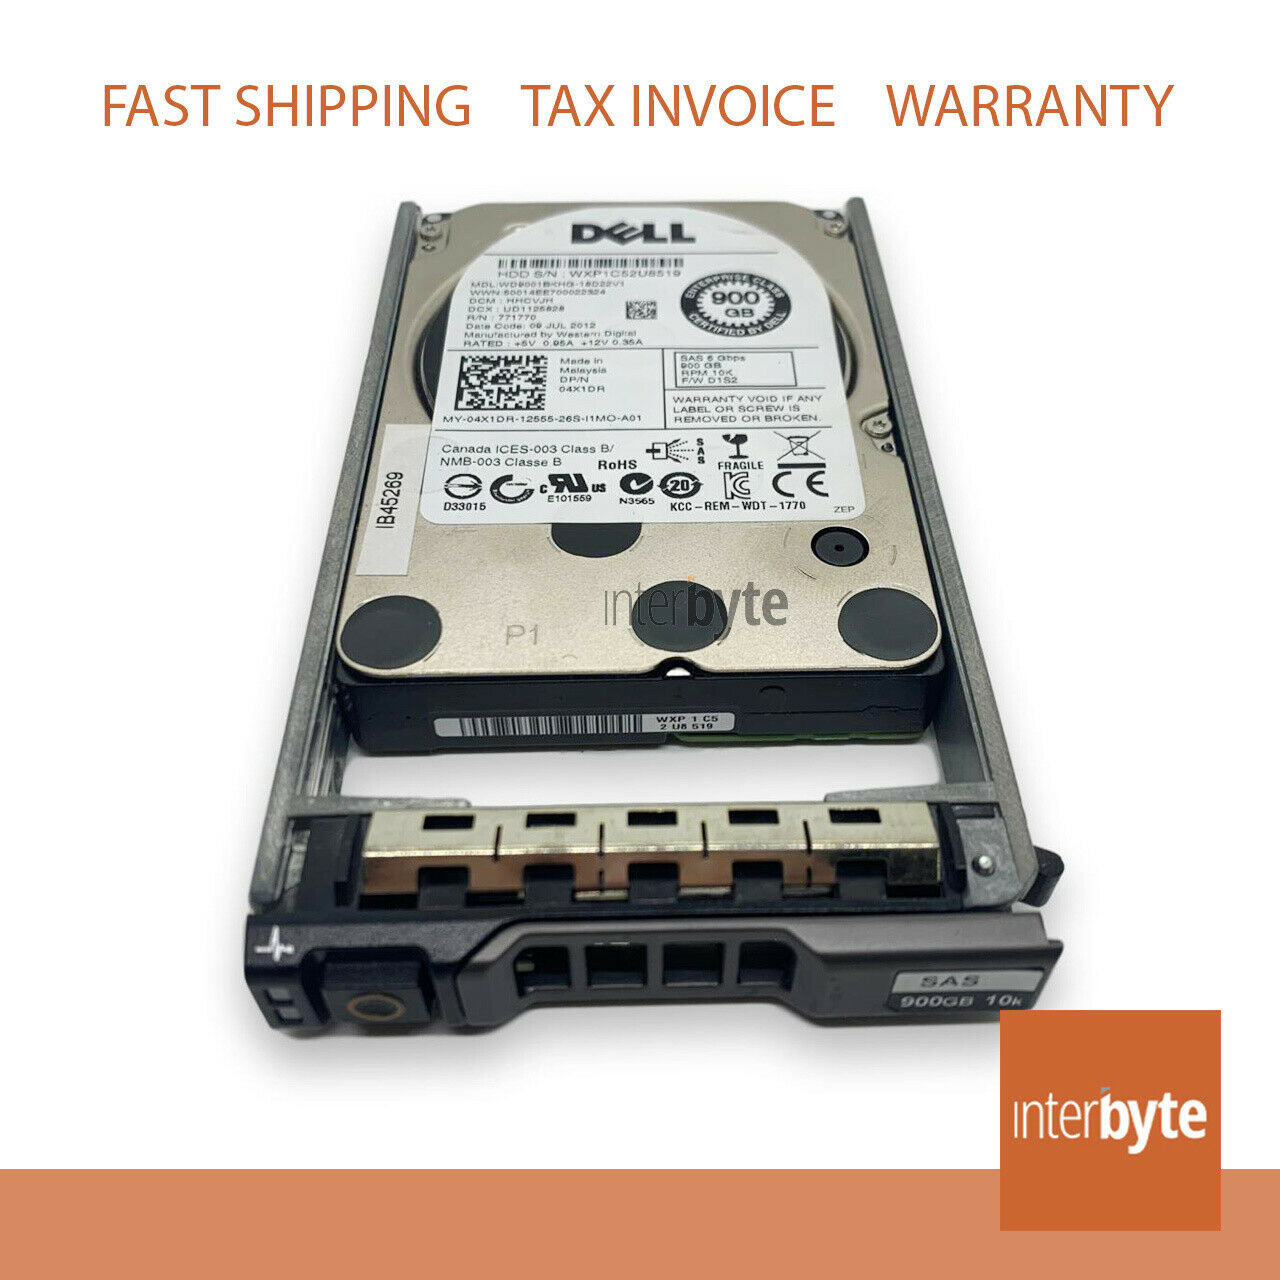 Harti Compliants/ 190FH Dell 300-GB 12G 15K 2.5 SAS For Dell PowerEdge T-Series Dell PowerVault M-Series R-Series C-Series